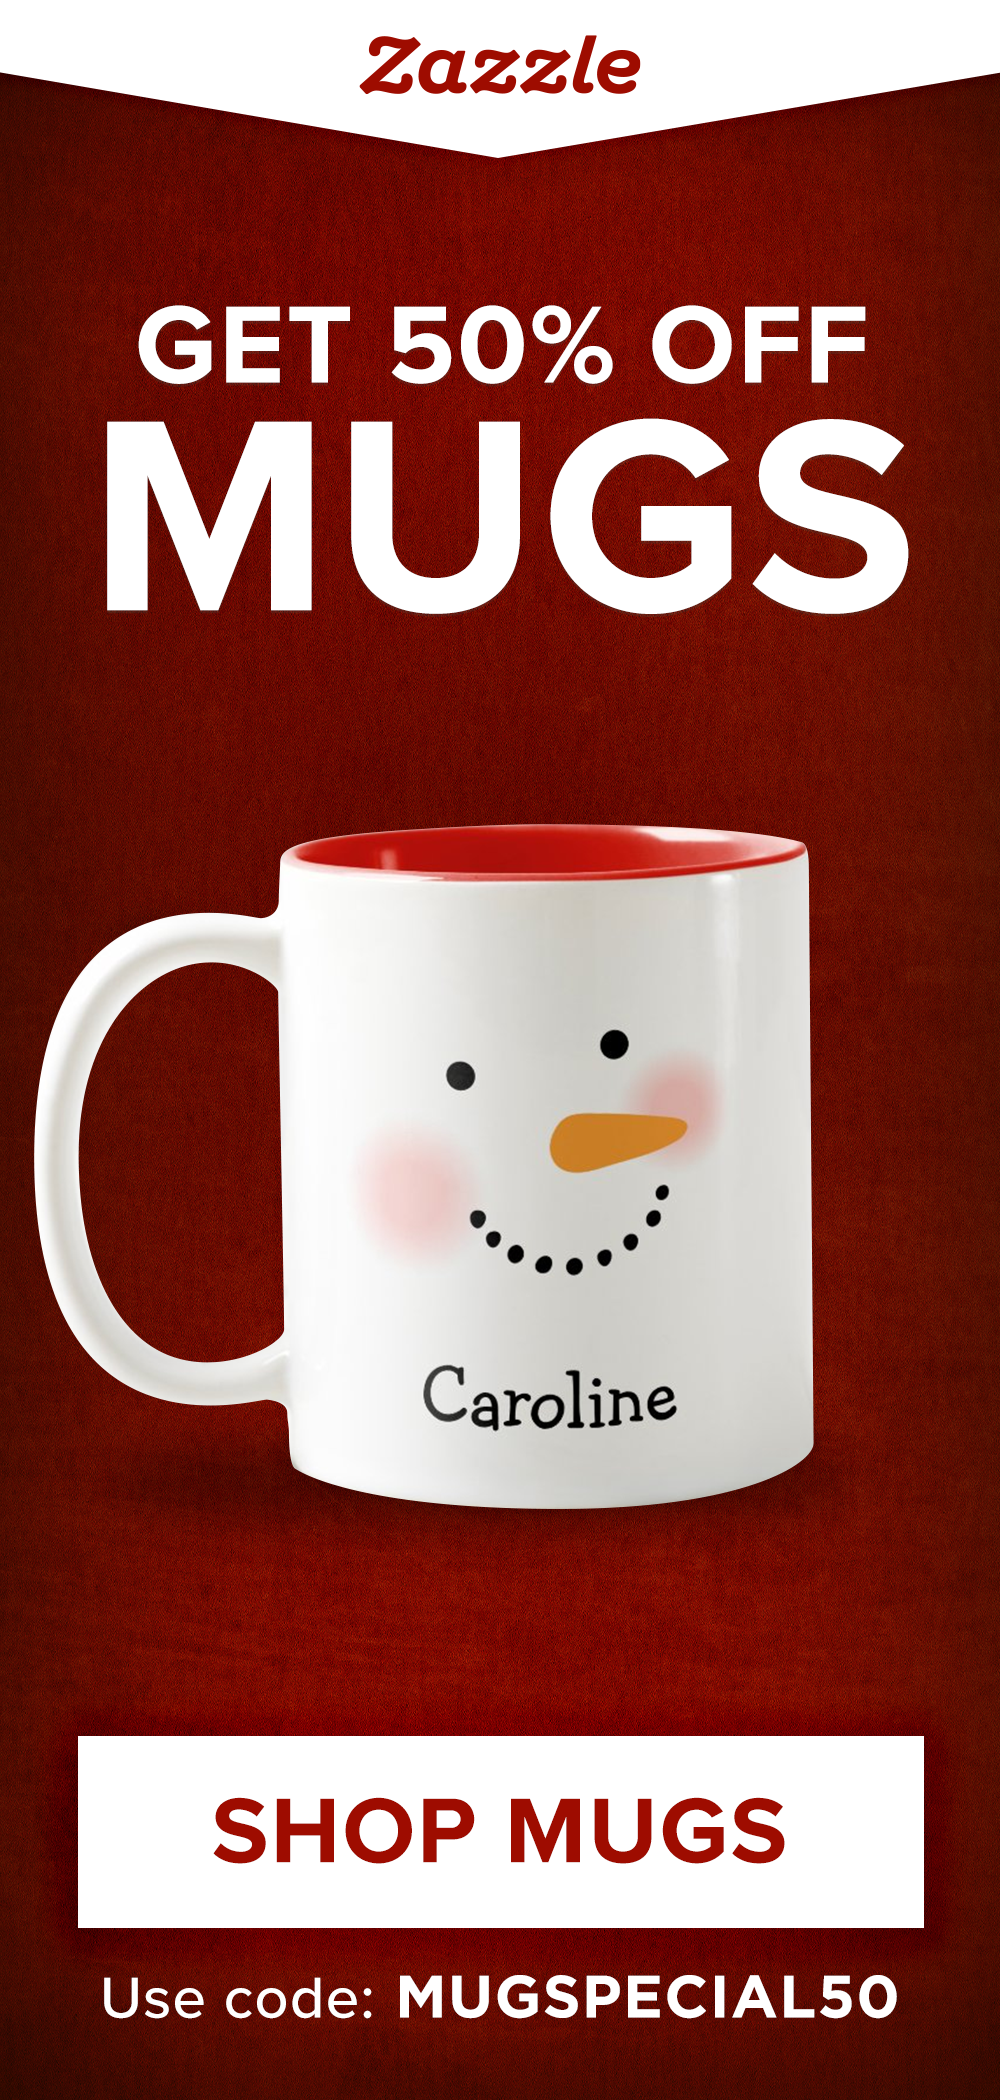 Get 50% off custom mugs with code MUGSPECIAL50. Personalize with photos and text or browse our selection of thousands of other designs. Shop themes for Christmas, Disney, Star Wars, funny, inspirational and more! Ends Friday, November 6, 2020.